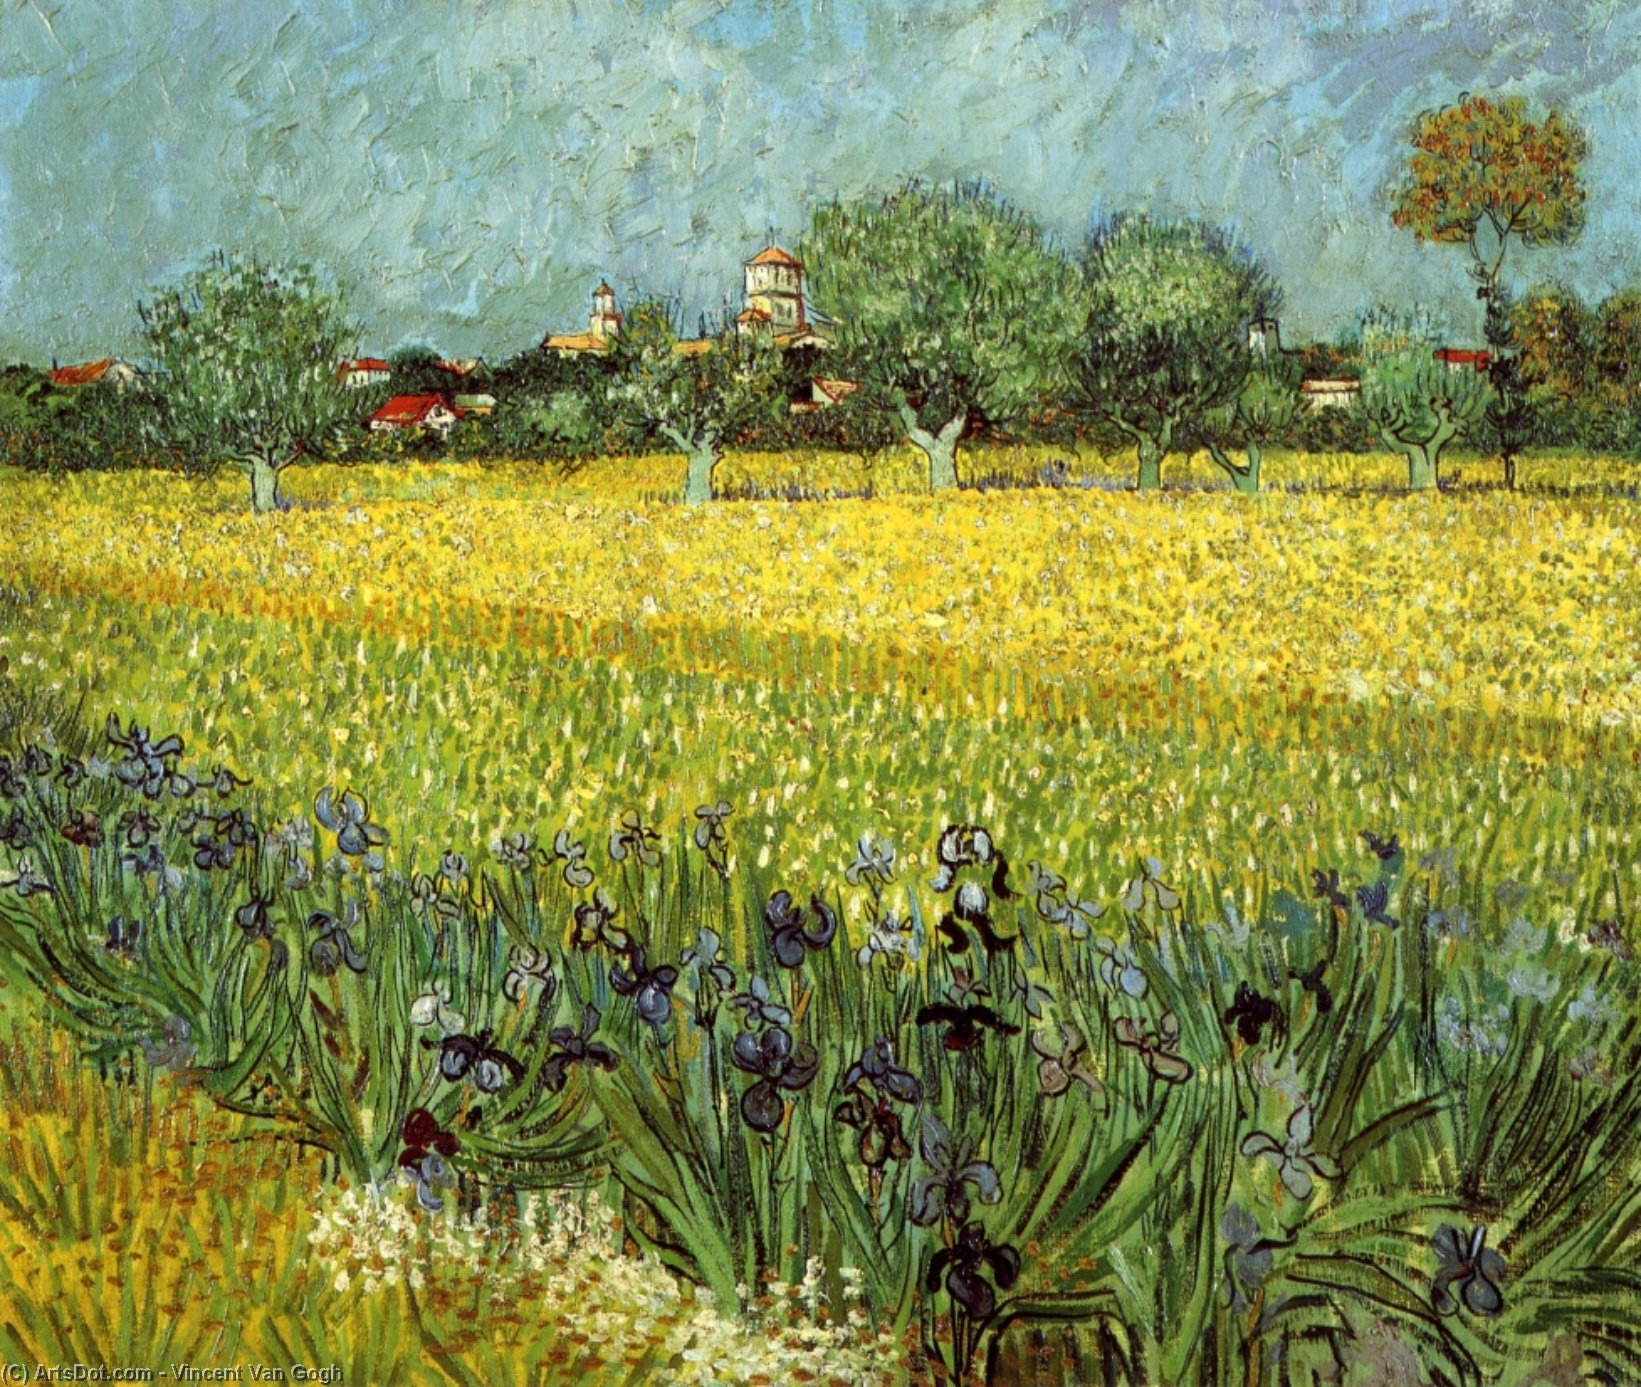 Wikioo.org - The Encyclopedia of Fine Arts - Painting, Artwork by Vincent Van Gogh - View of Arles with Irises